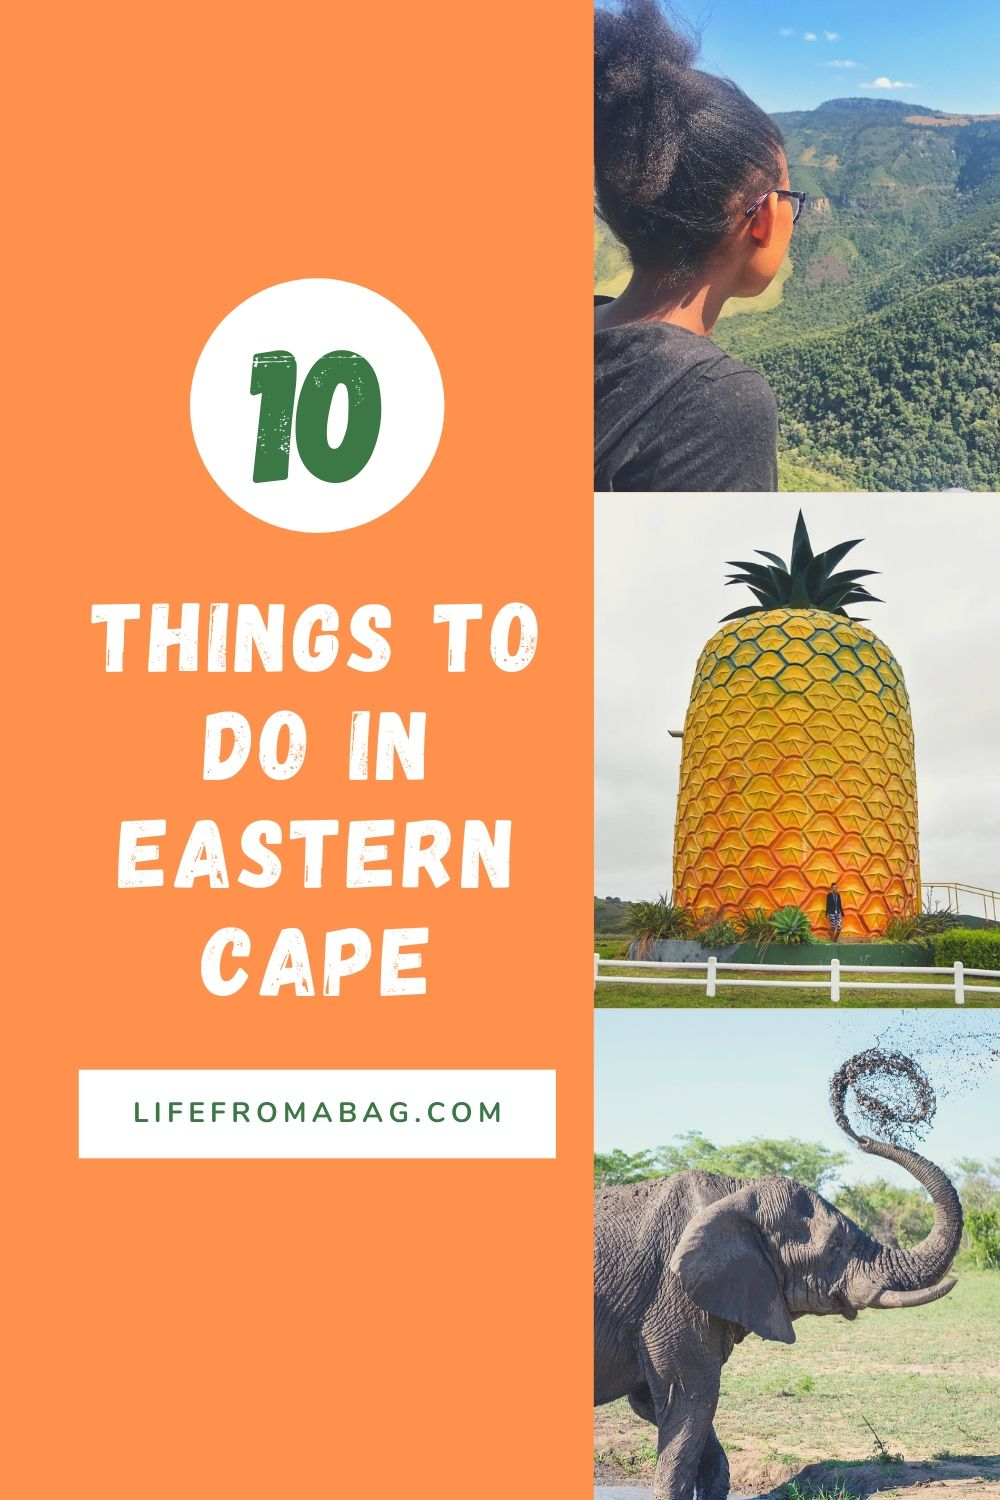 Things to do in Eastern Cape